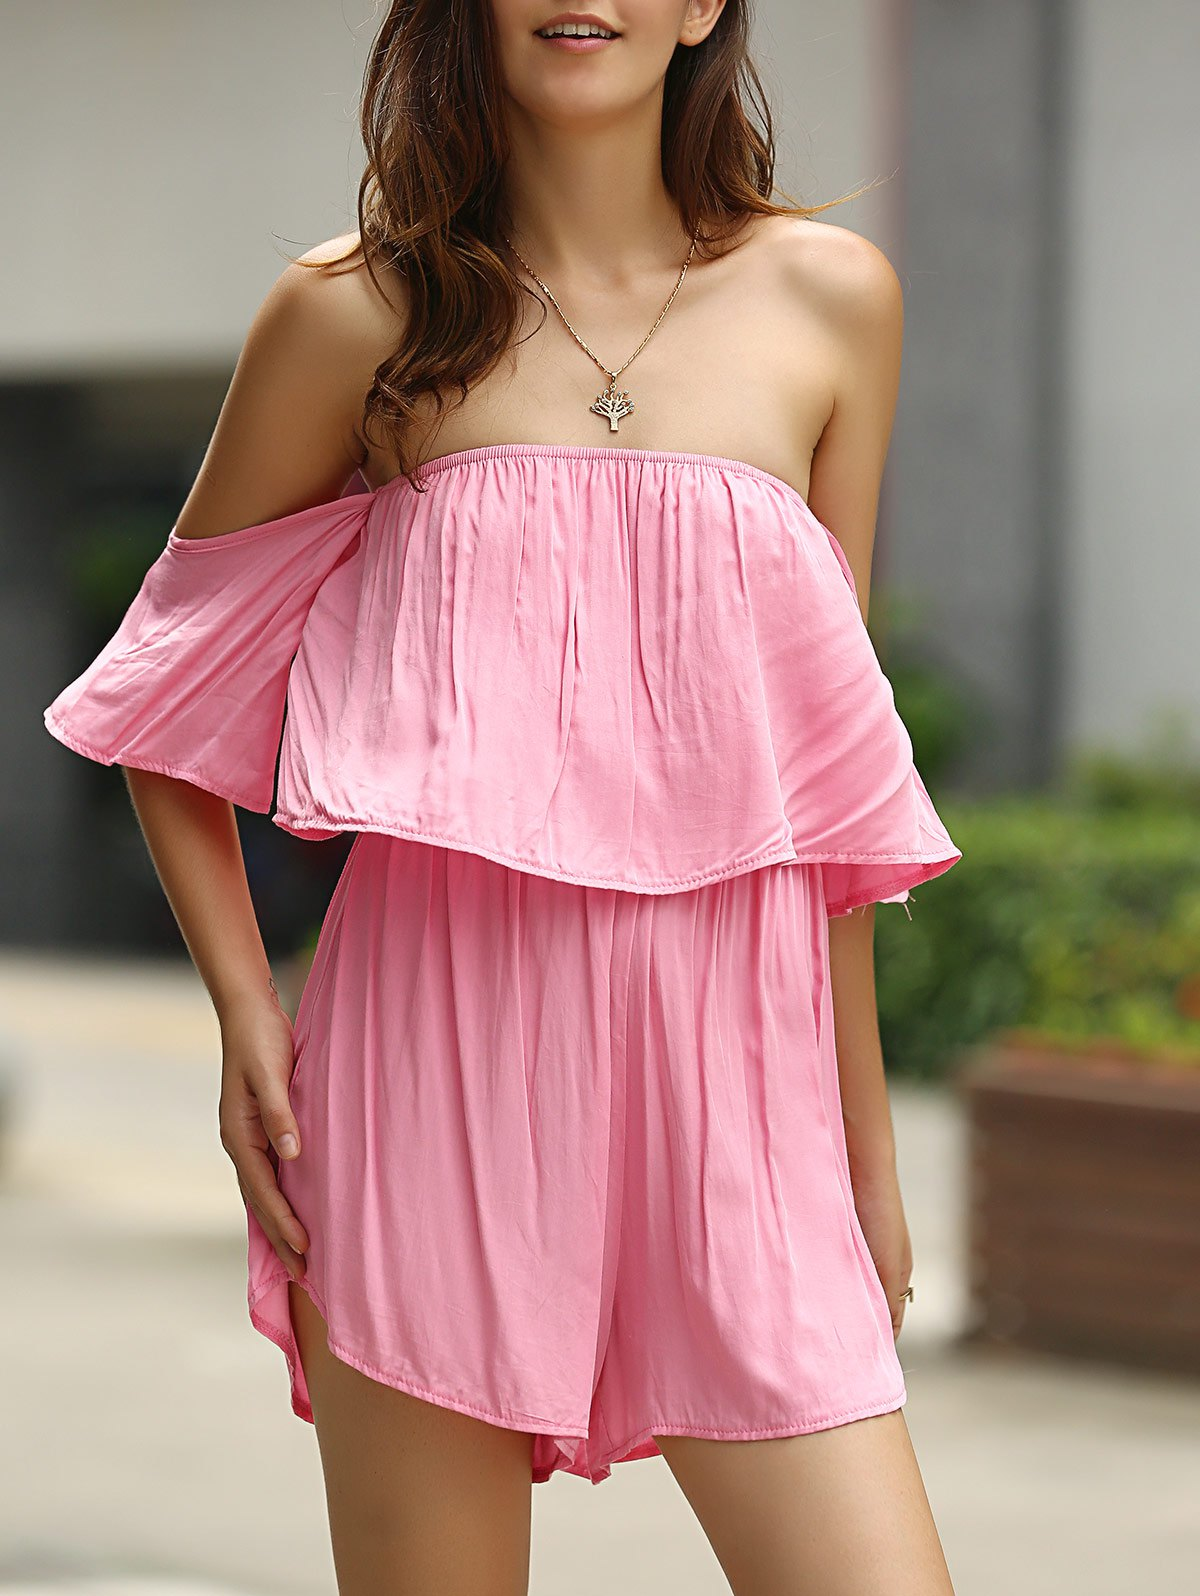 Fashionable Off-The-Shoulder Flouncing Pink Romper For Women